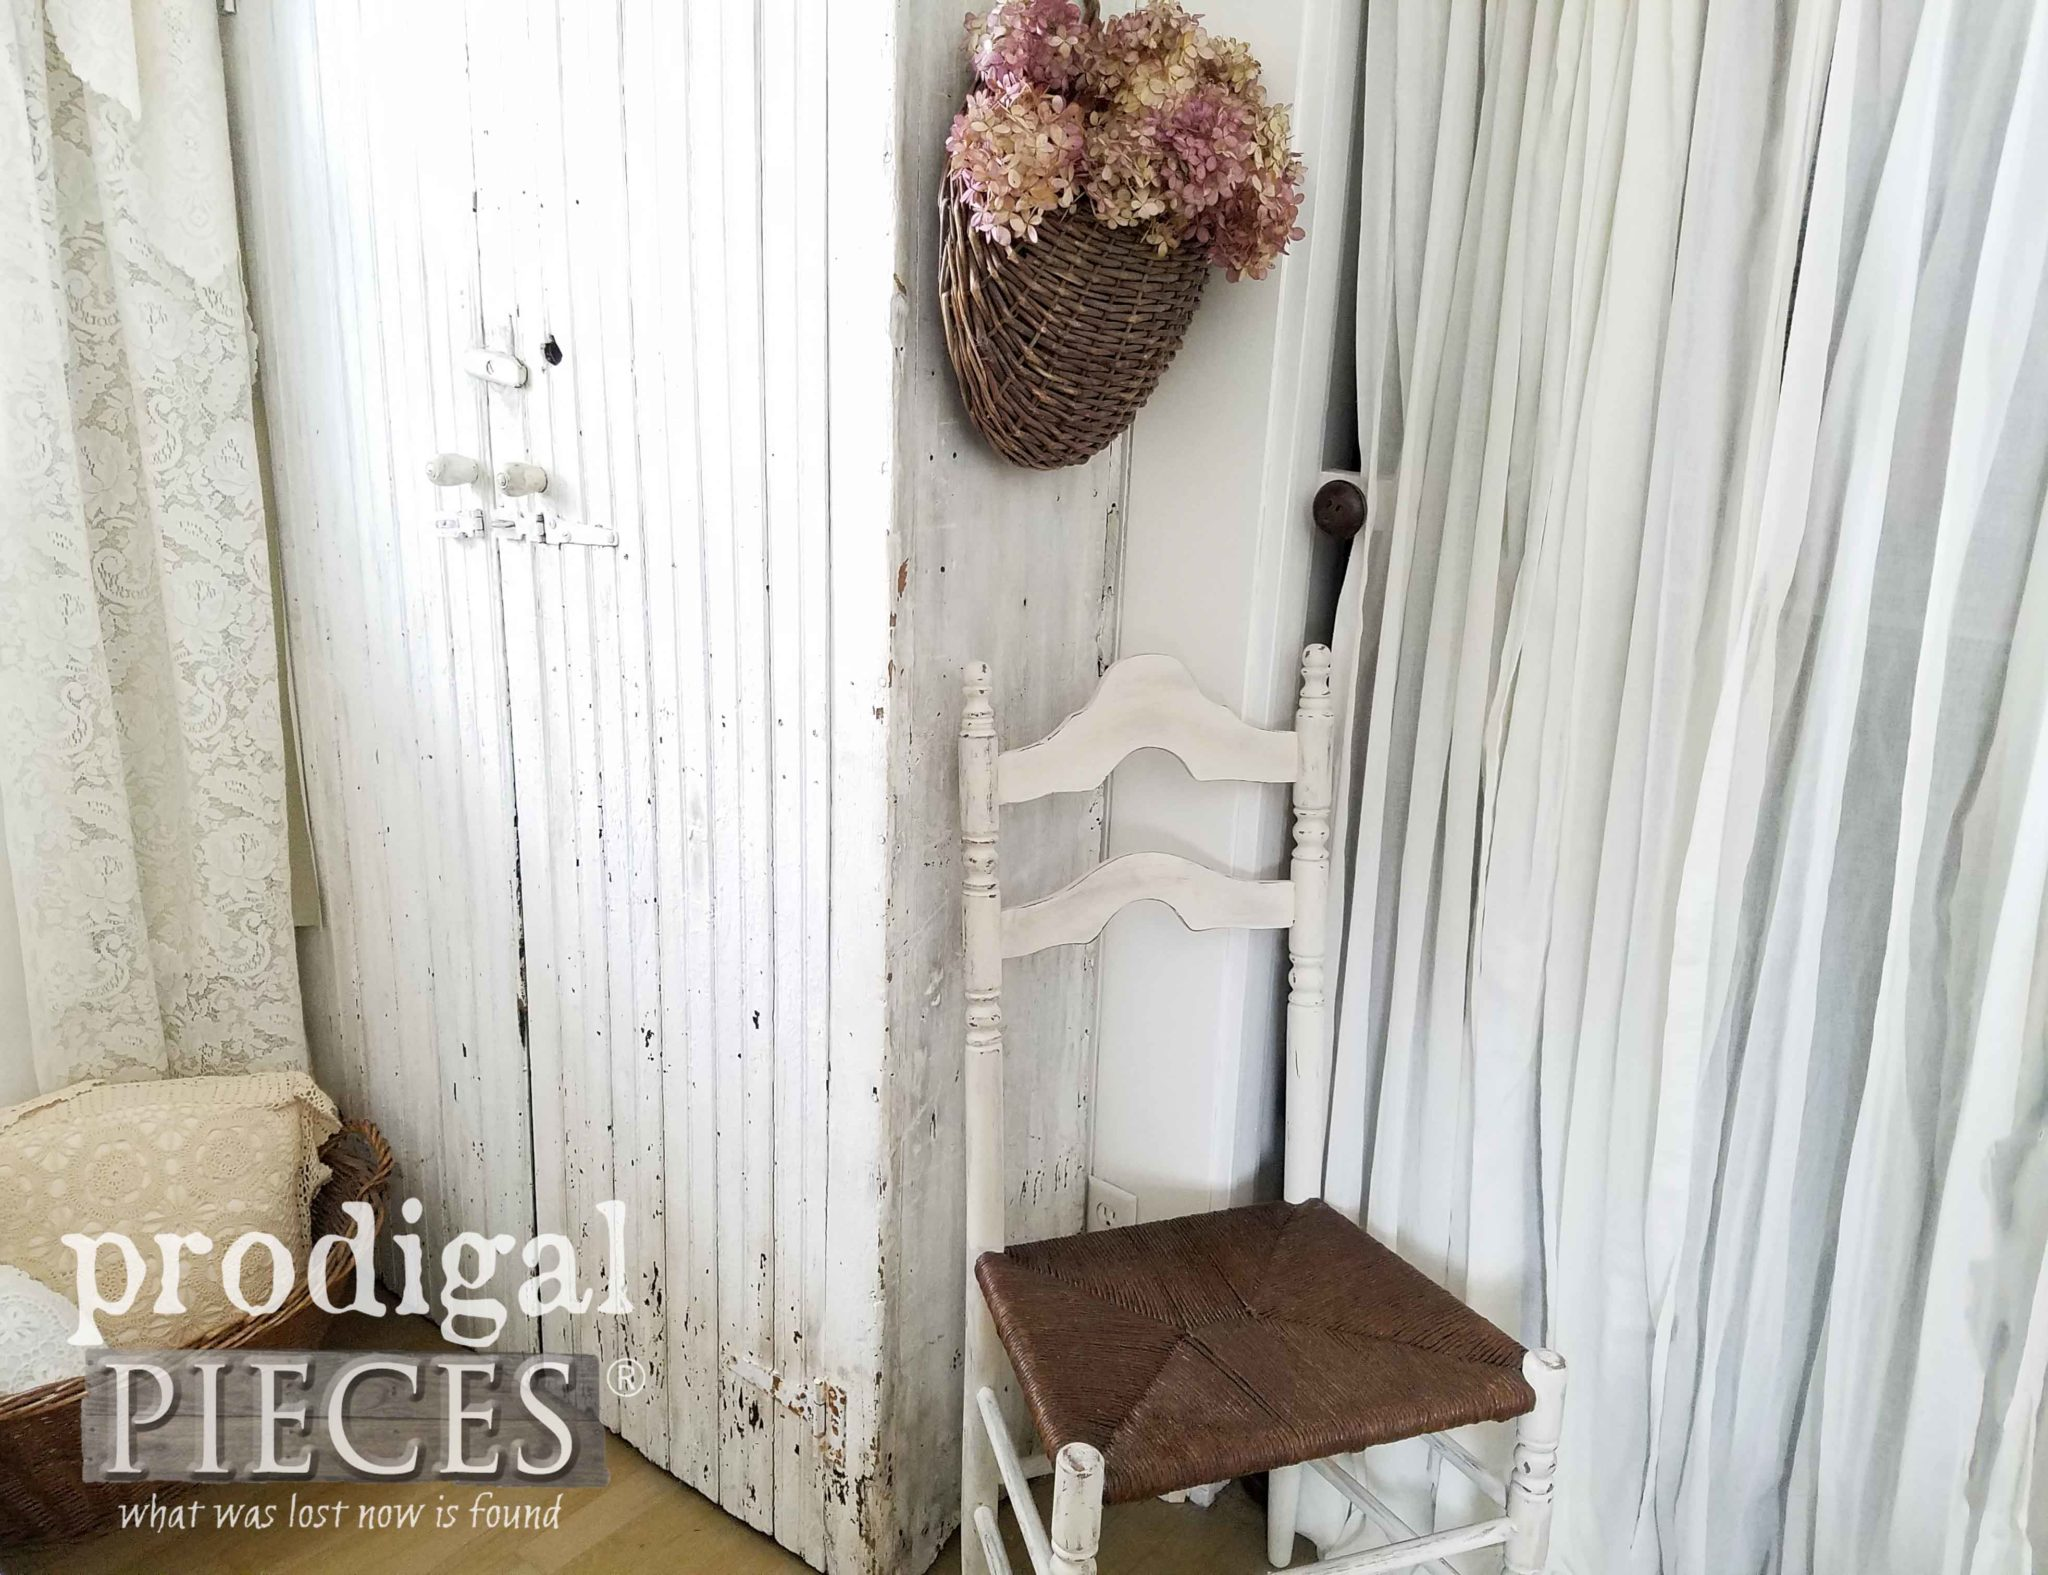 Farmhouse Bedroom Decor done DIY style by Larissa of Prodigal Pieces | prodigalpieces.com